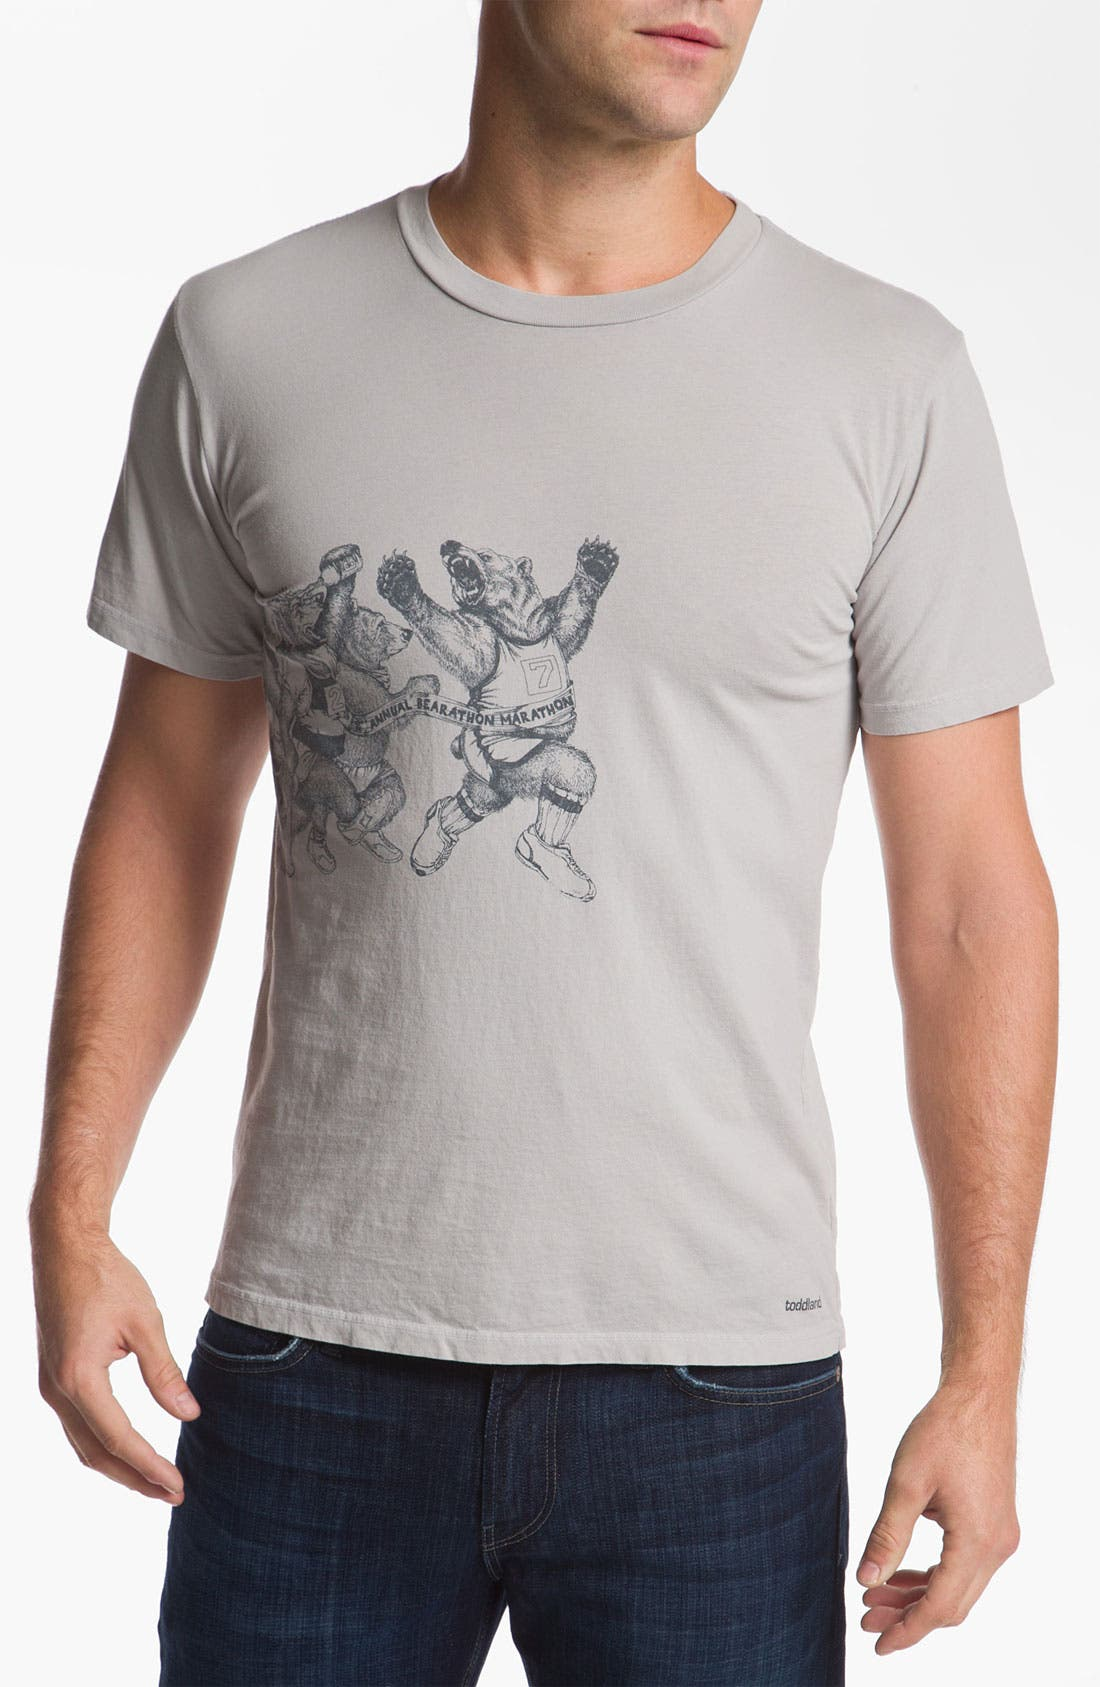 Alternate Image 1 Selected - Toddland 'Bearathon' T-Shirt